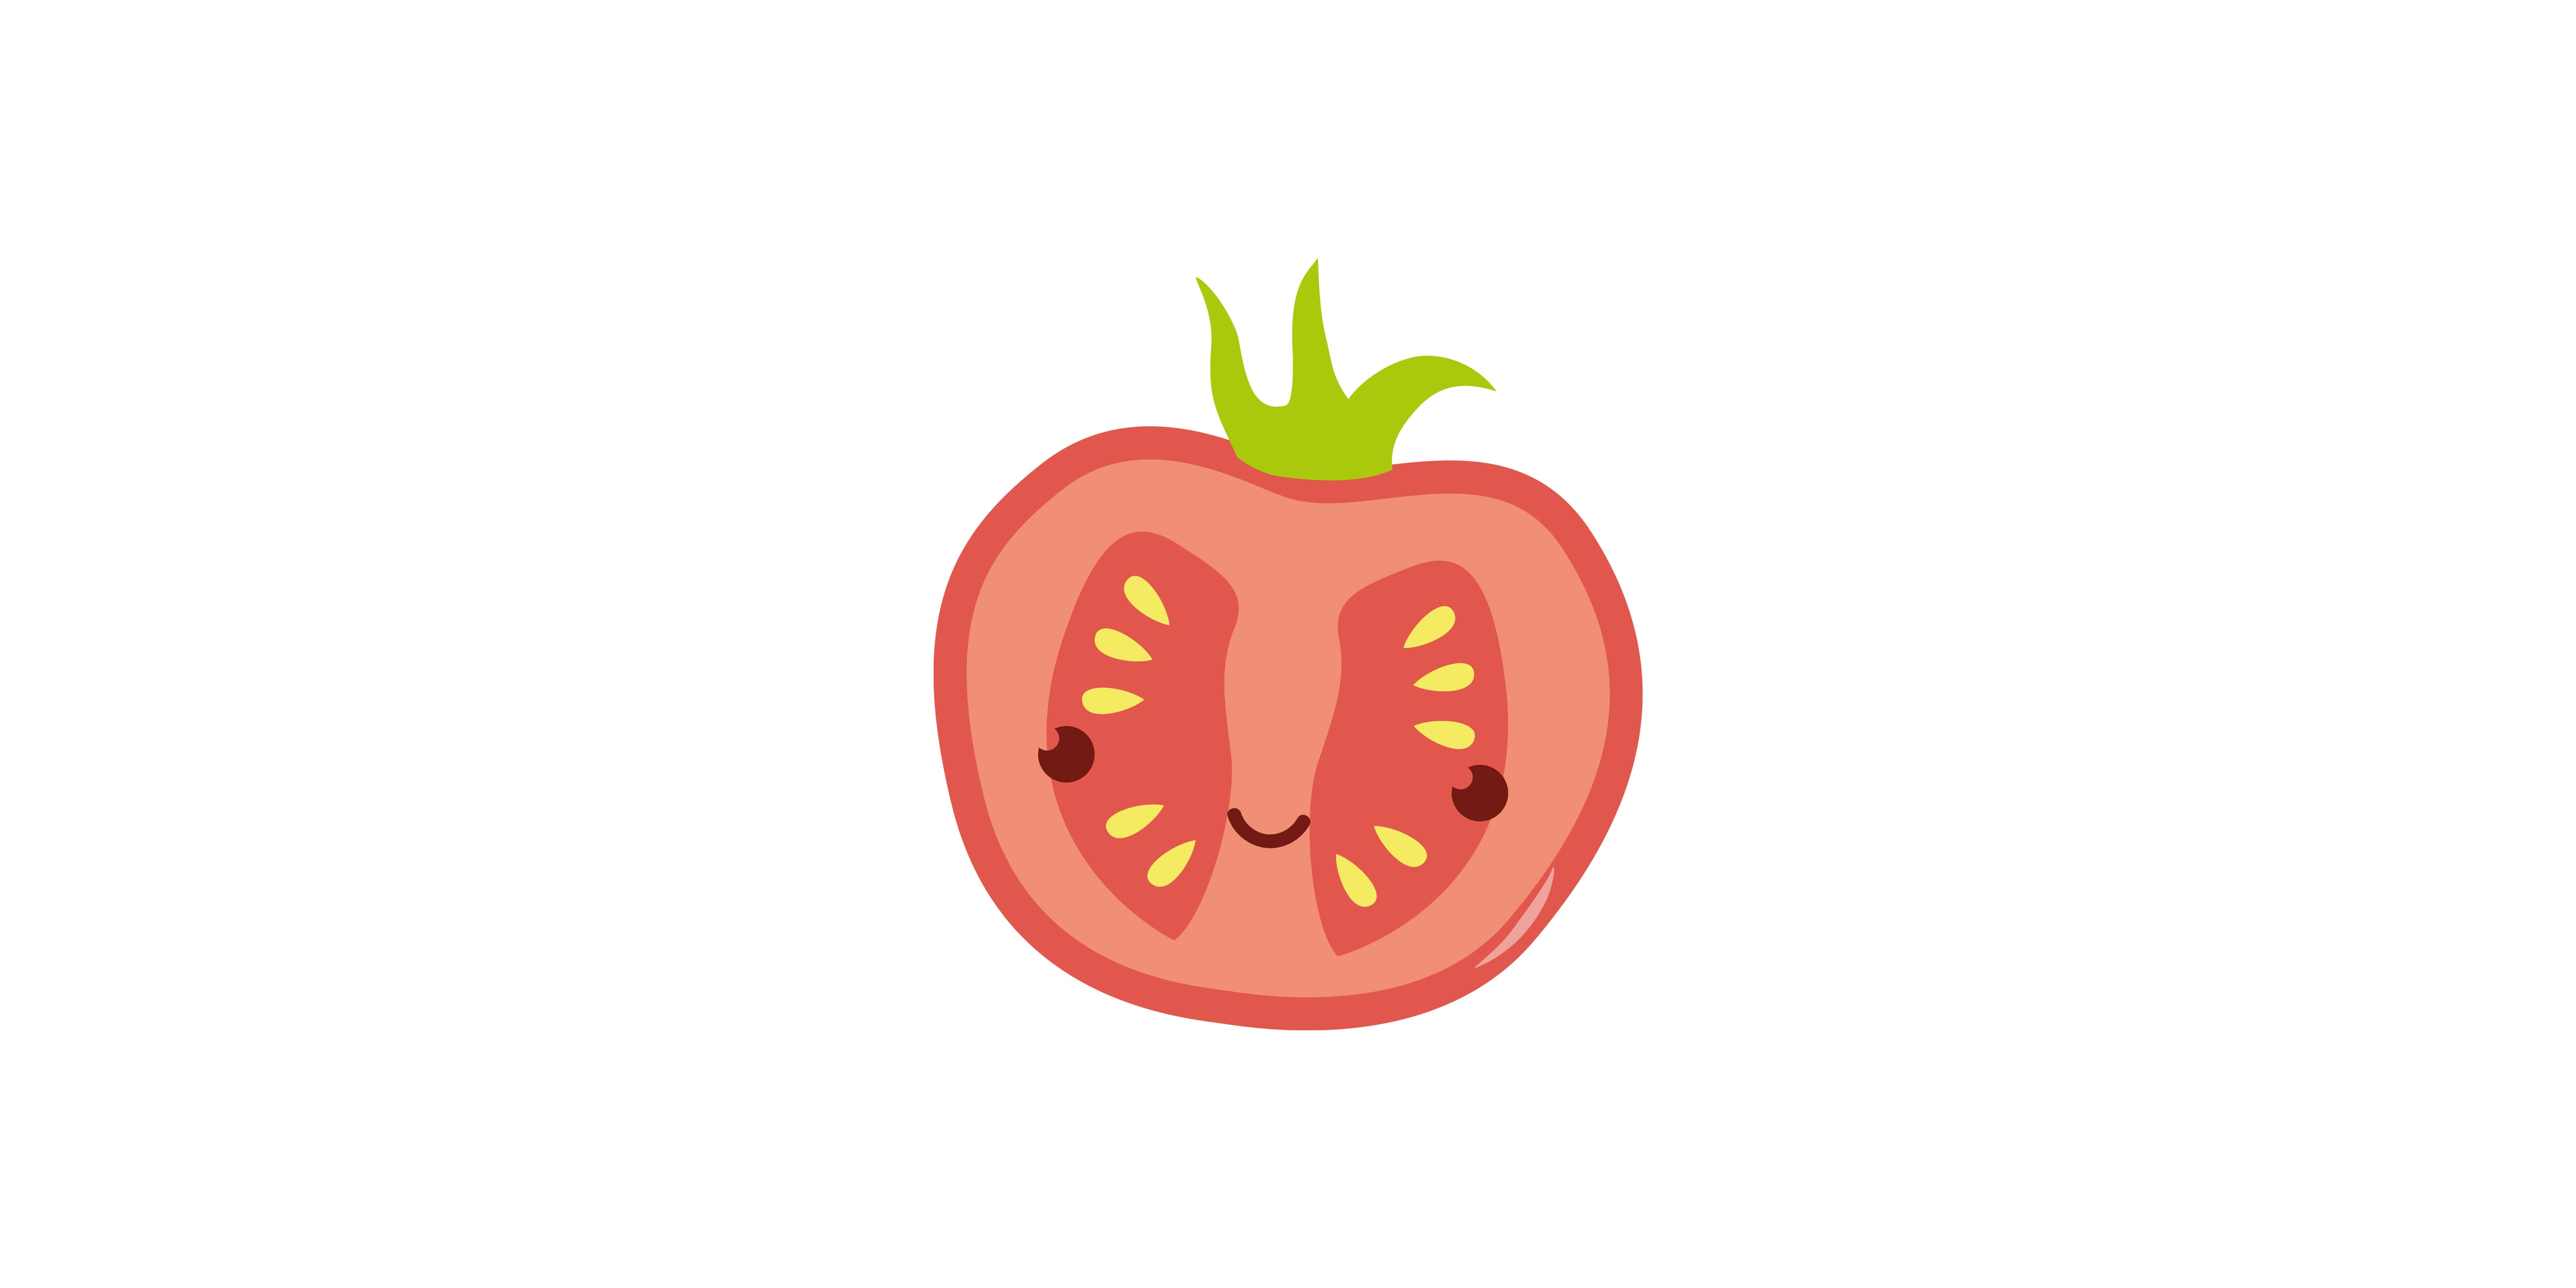 Your baby is now roughly the size of a little tomato.